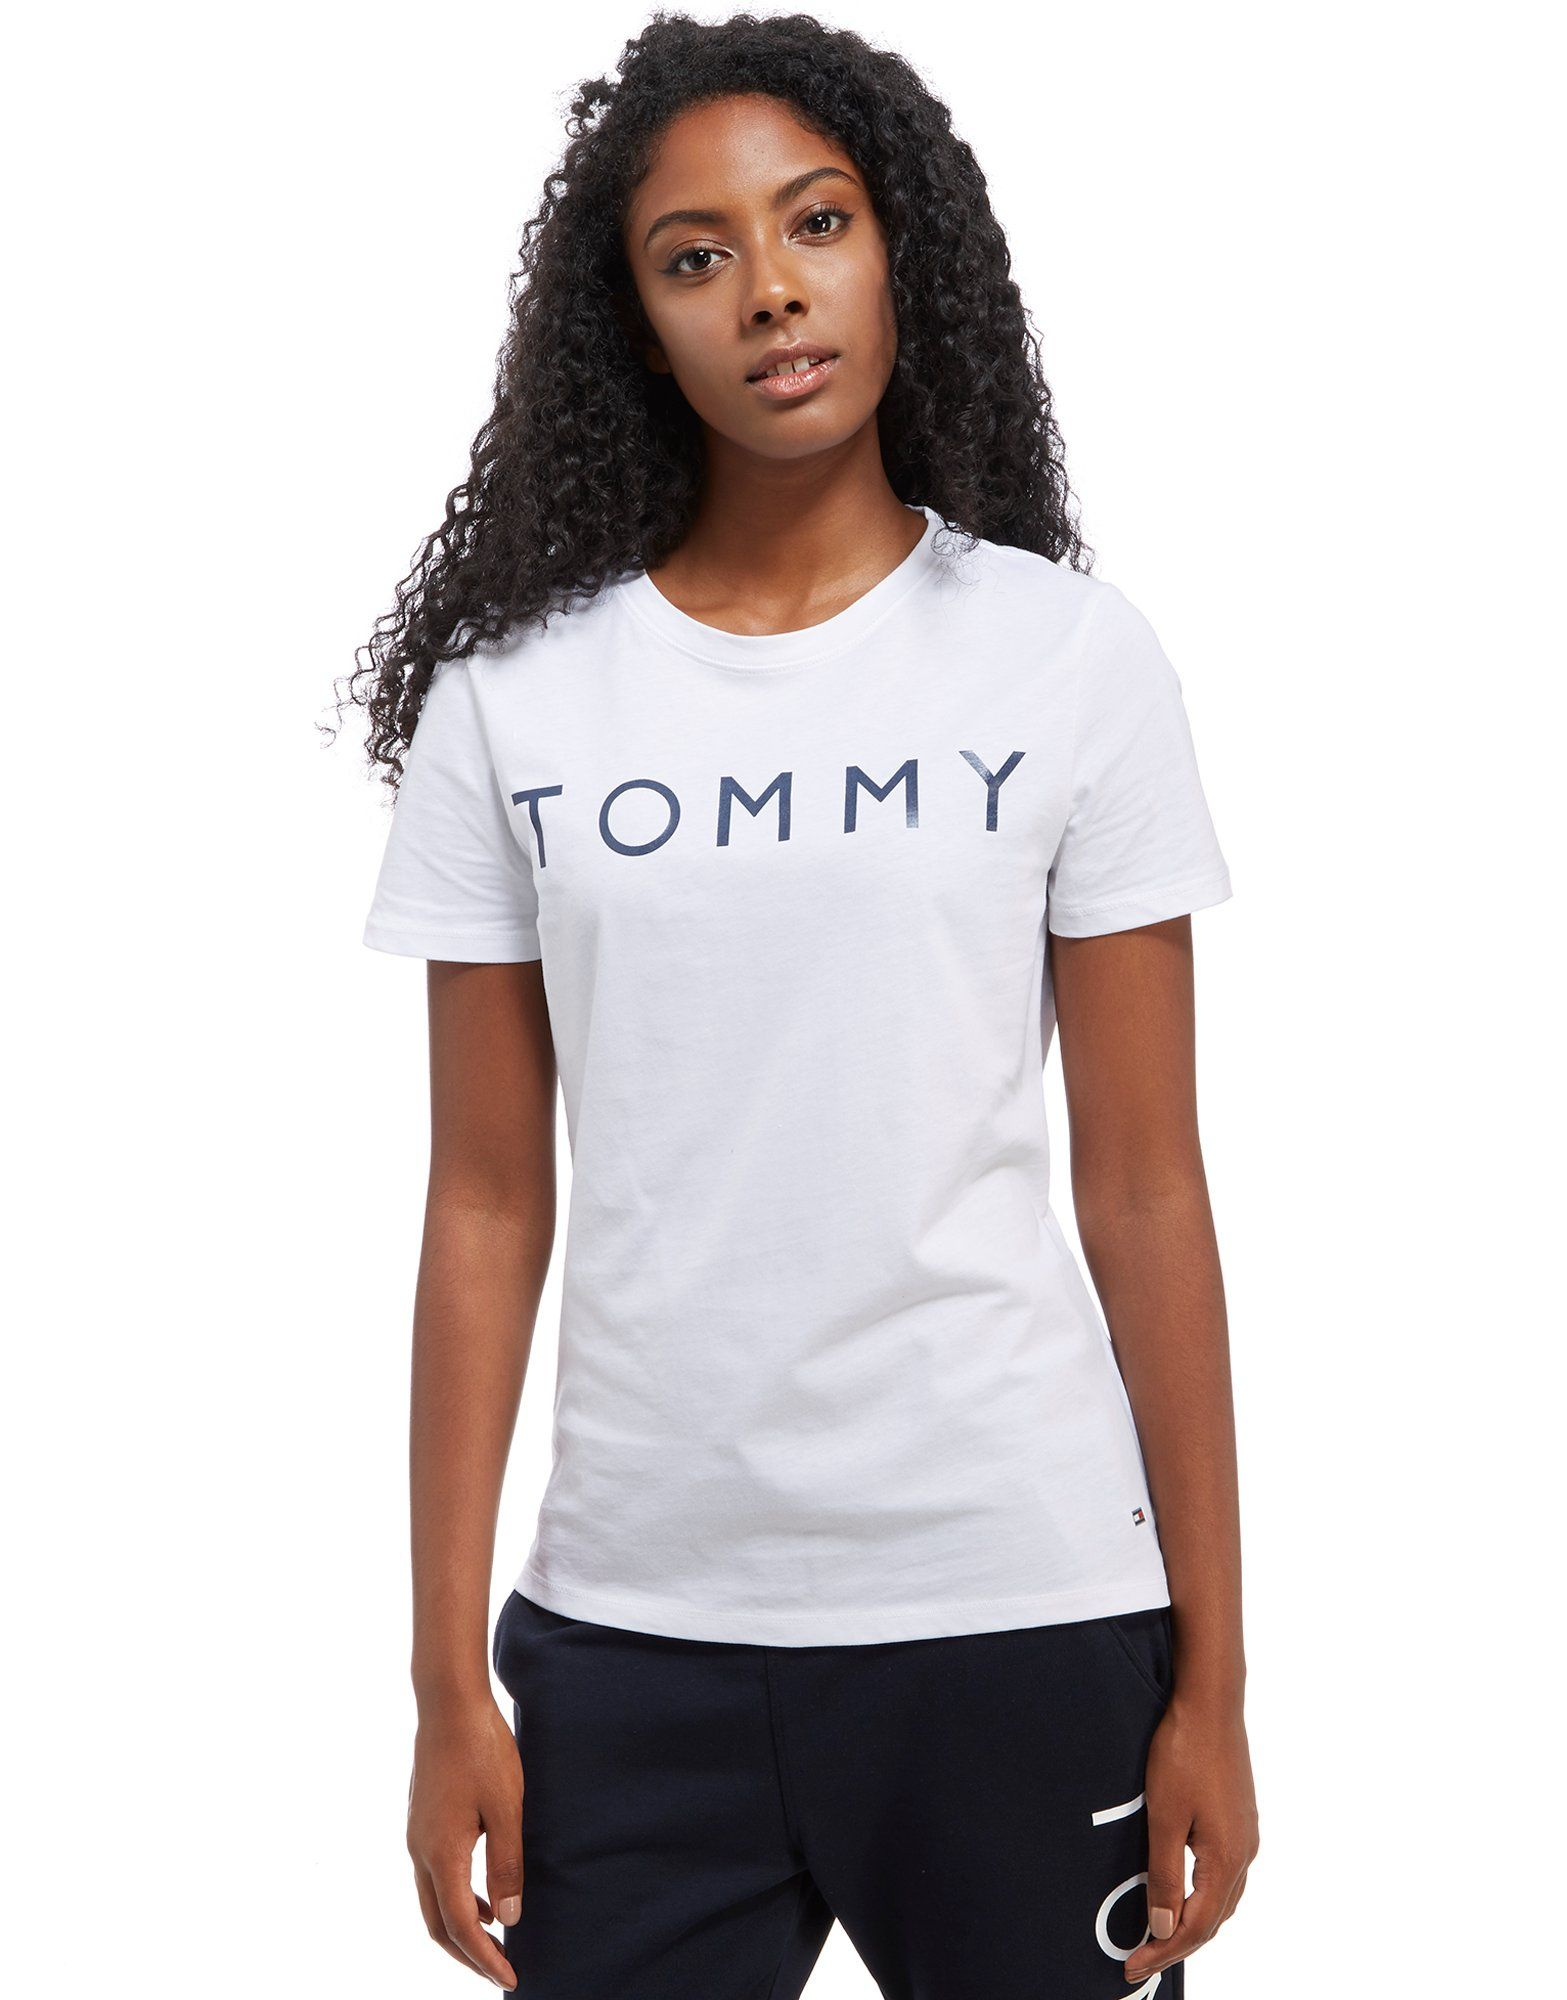 tommy hilfiger logo t shirt jd sports. Black Bedroom Furniture Sets. Home Design Ideas